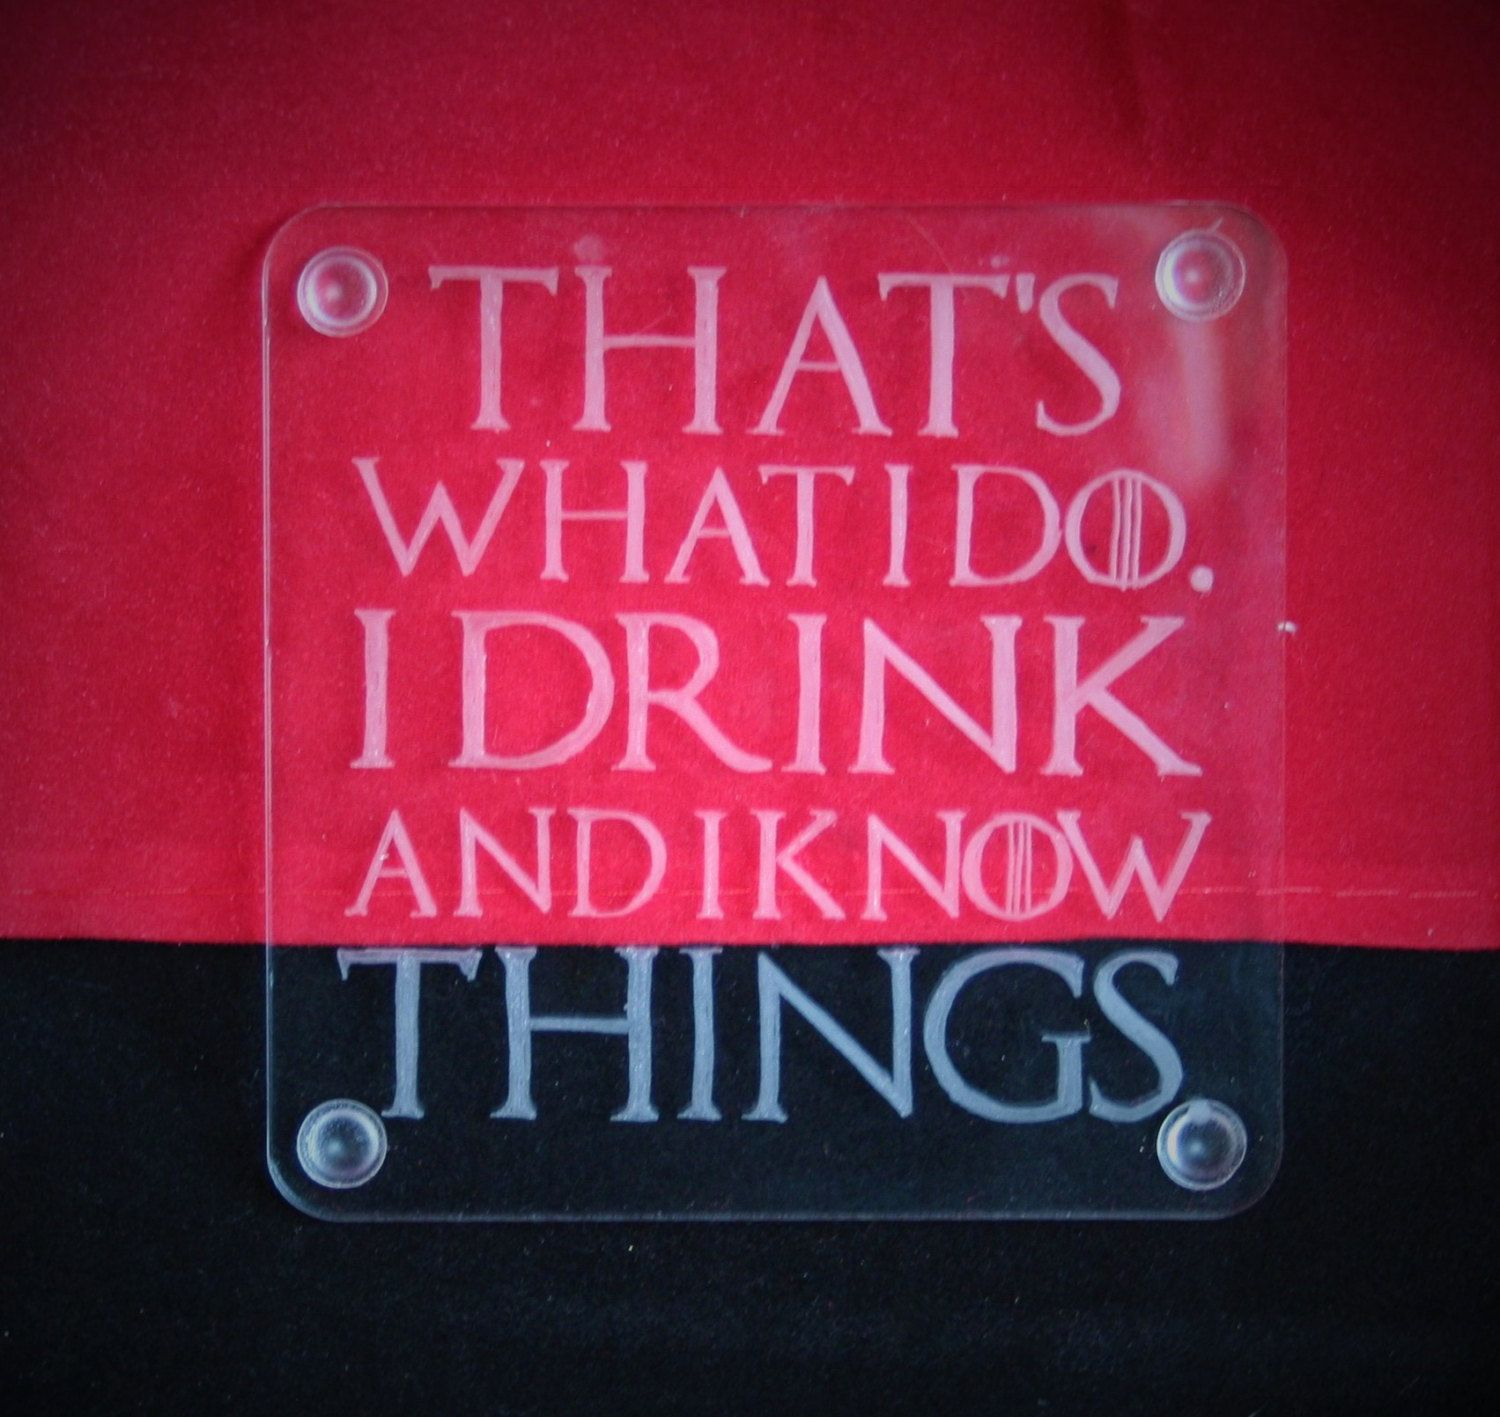 Game of Thrones inspired coaster, Tyrion Lannister quote